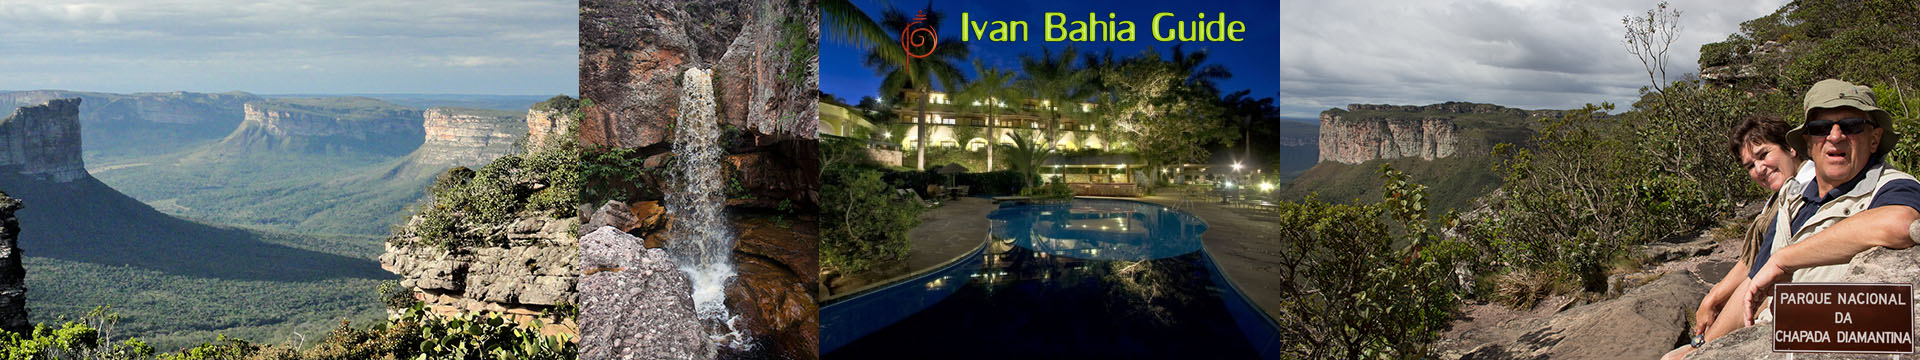 Organize your travel in Bahia / Brazil with Ivan Bahia tour guide to discover Bahia, top private tour-guide & travel agency in Brazil, for your best experience (in English - Français - Nederlands) in Salvador, Chapada Diamantina National Park, All Saints Bay, Cachoeira, Recôncavo Baiano, Praia do Forte, Coconut coast and Bahia /NE-Brazil #ivanbahiaguide #ivansalvadorbahia #salvadorbahiabrazil #bahiatourism #fotoschapadadiamantina #ibg #ibtg #fotosbahia #salvadorbahiatravel #toursbylocals #chapadadiamantinatransfer #chapadadiamantina #lencoistomorrodesaopaulo #voyagebresil #bresilessentiel #salvadortourguide #chapadadiamantinatrekking #lencois #lençois #toursbahia #brazilhoneymoon #yourtourbrazil #yourtoursbrazil   #ig_bahia  #bahiatours #reconcavobaiano #bahiaguide  #citytoursalvador #guidedetourismesalvadorbahiabresil #transatjacquesvabres #sailingbrazil #yourtoursbrazil #maurotours #bahiatopturismo #gaytravelbrazil  #transfersalvador #morrodopaiinacio #FotosChapadaDiamantina #BahiaTourism #SalvadorBahiaBrazil #FotosBahia #SalvadorBahiaTravel #tripadvisorsalvador #tripadvisorbahia #bahiatour #toursbahia #bahiatravel #salvadortourguide #fotosbahia #ssalovers